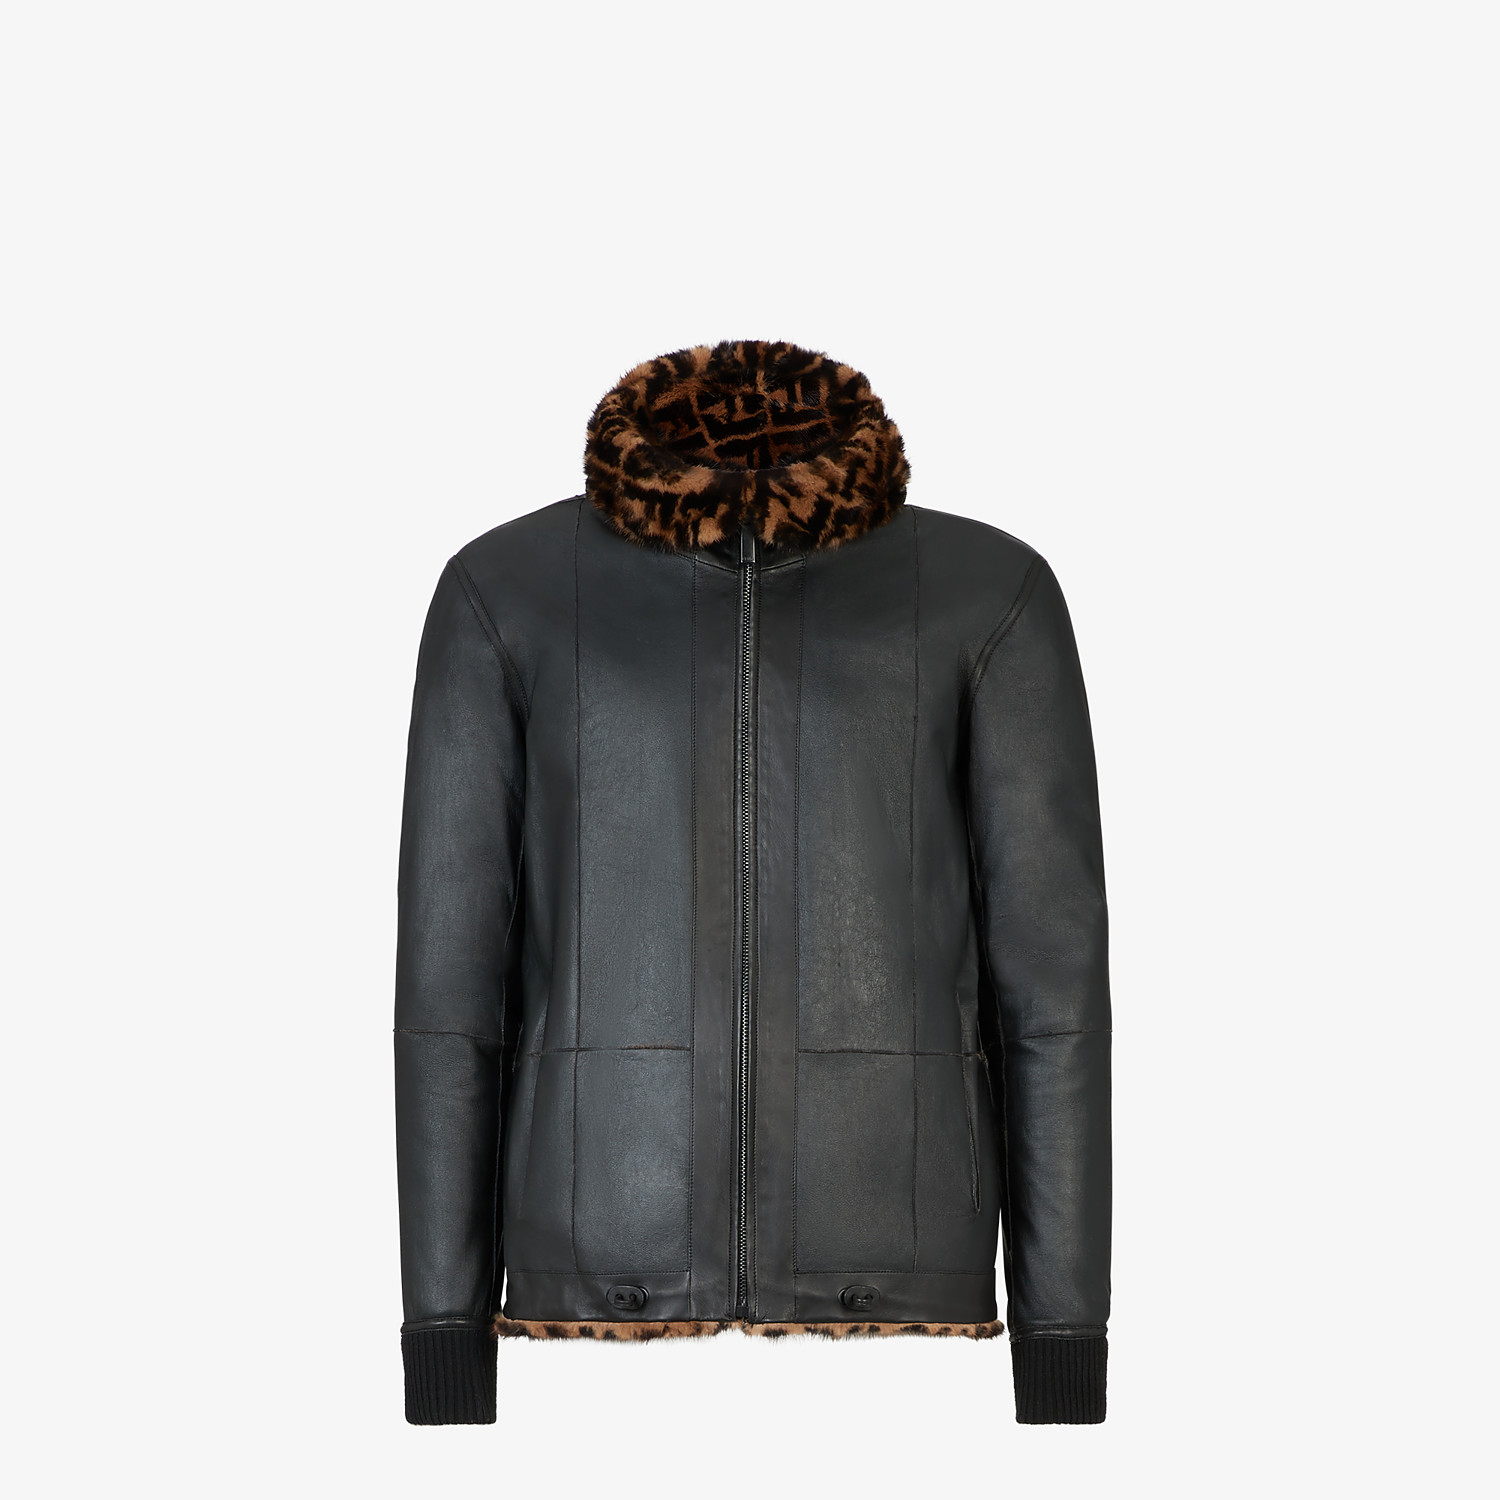 FENDI BLOUSON JACKET - Multicolor mink jacket - view 4 detail